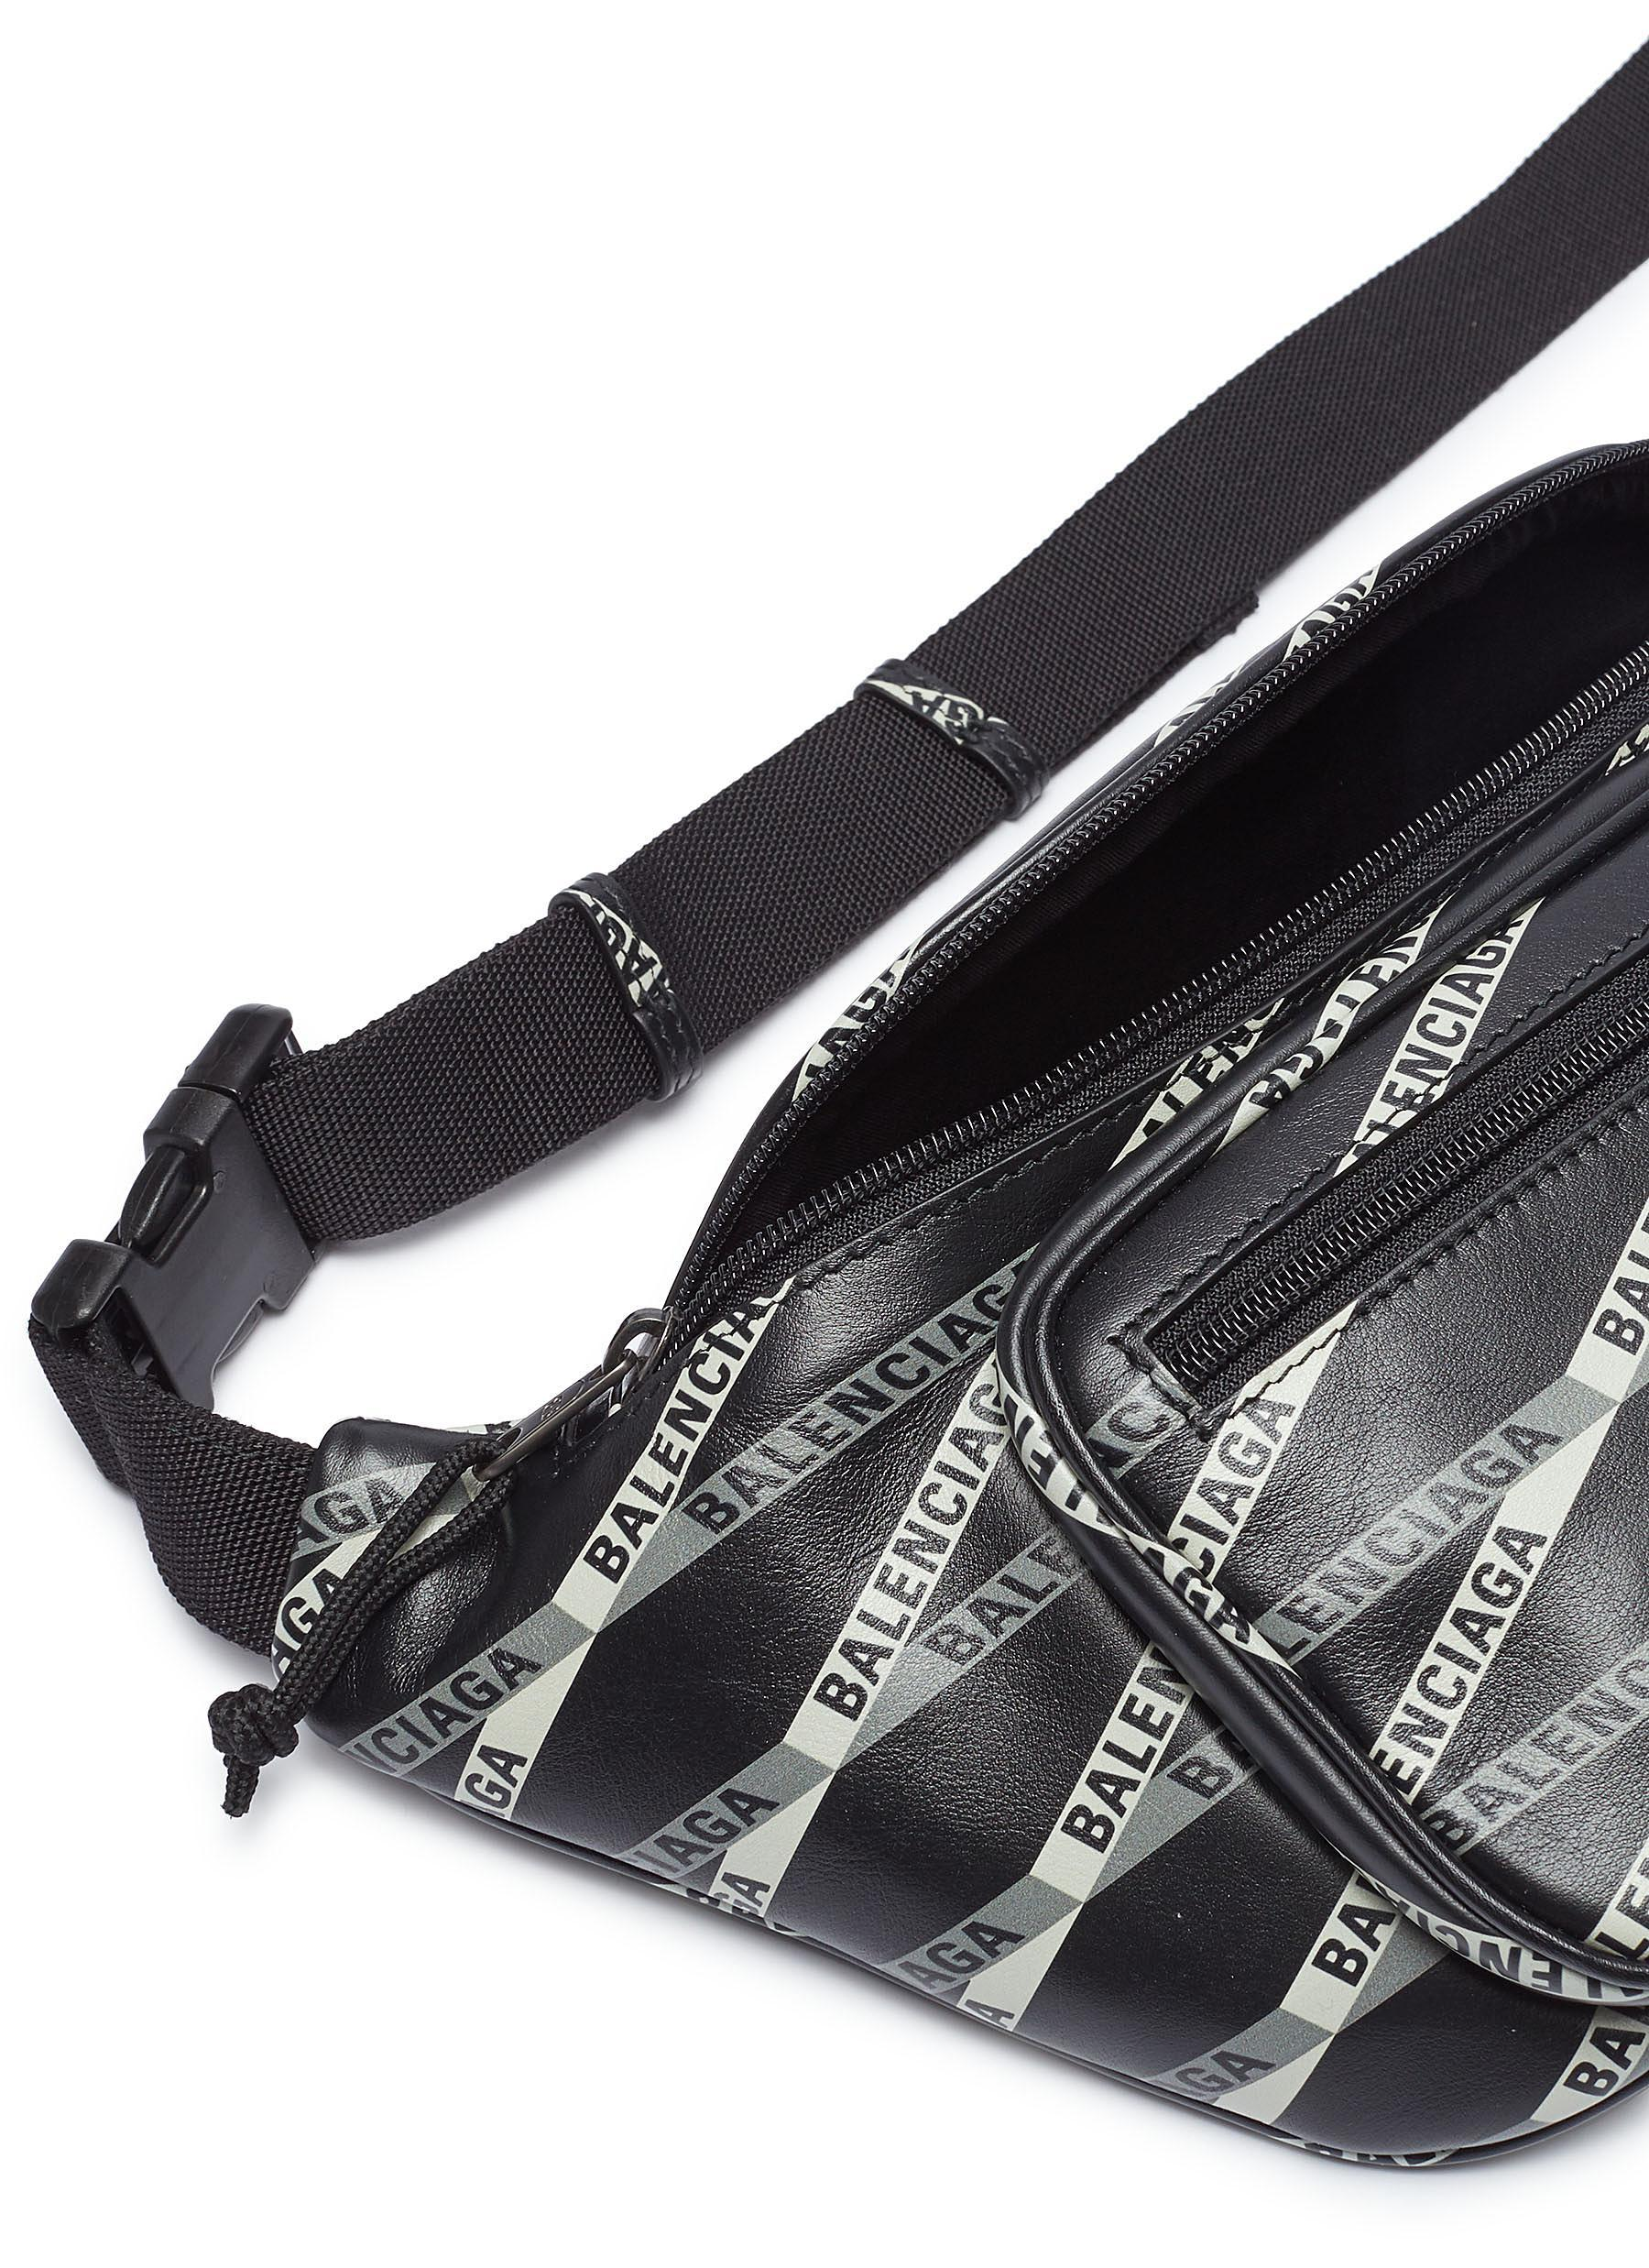 4b5749508c3 Balenciaga - Black 'explorer' Logo Tape Print Leather Belt Bag for Men -  Lyst. View fullscreen